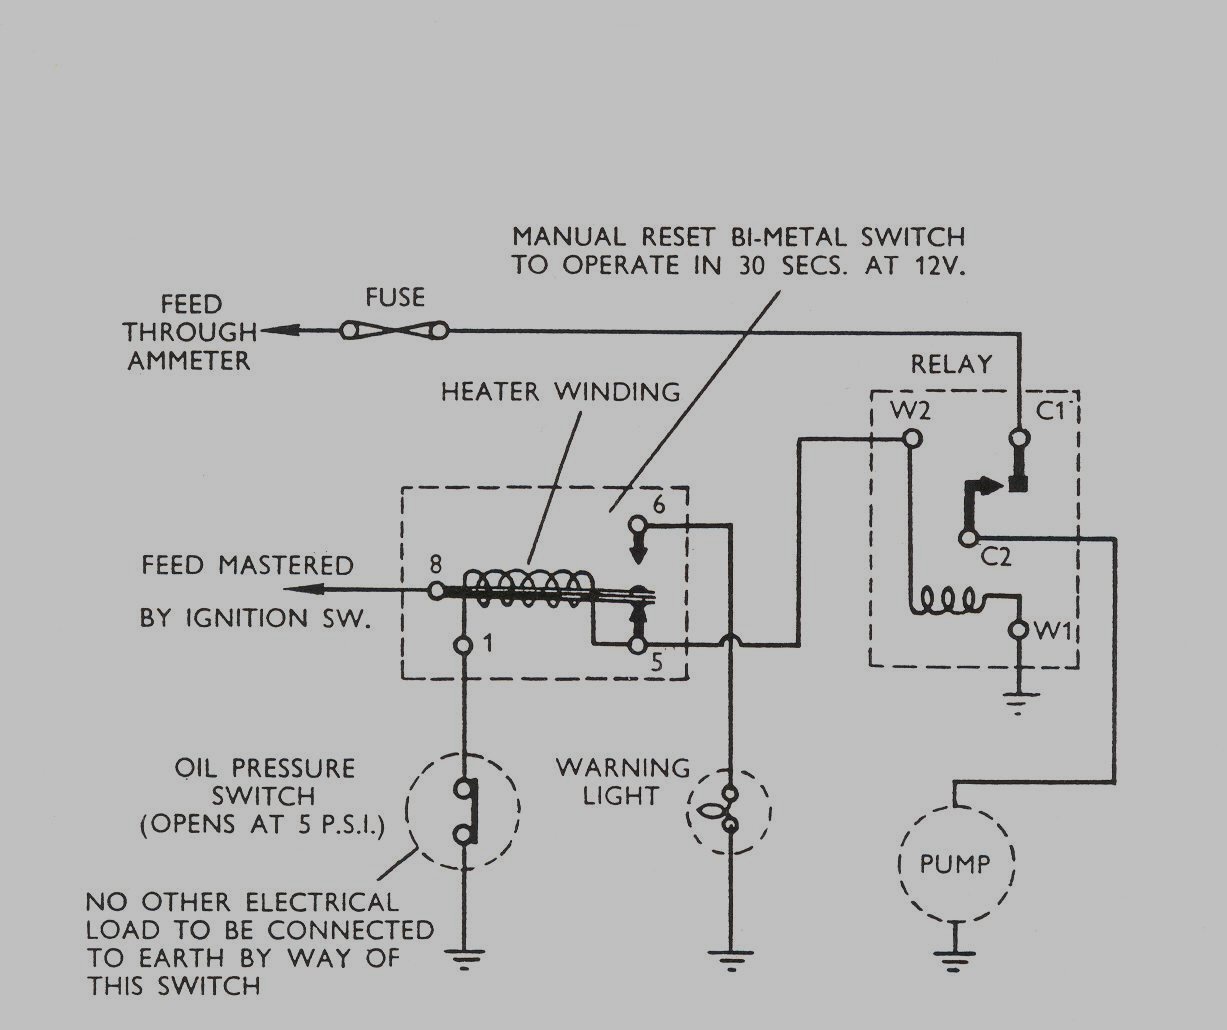 Lucas world service news wsn604 page 2 on voltage regulator wiring diagram